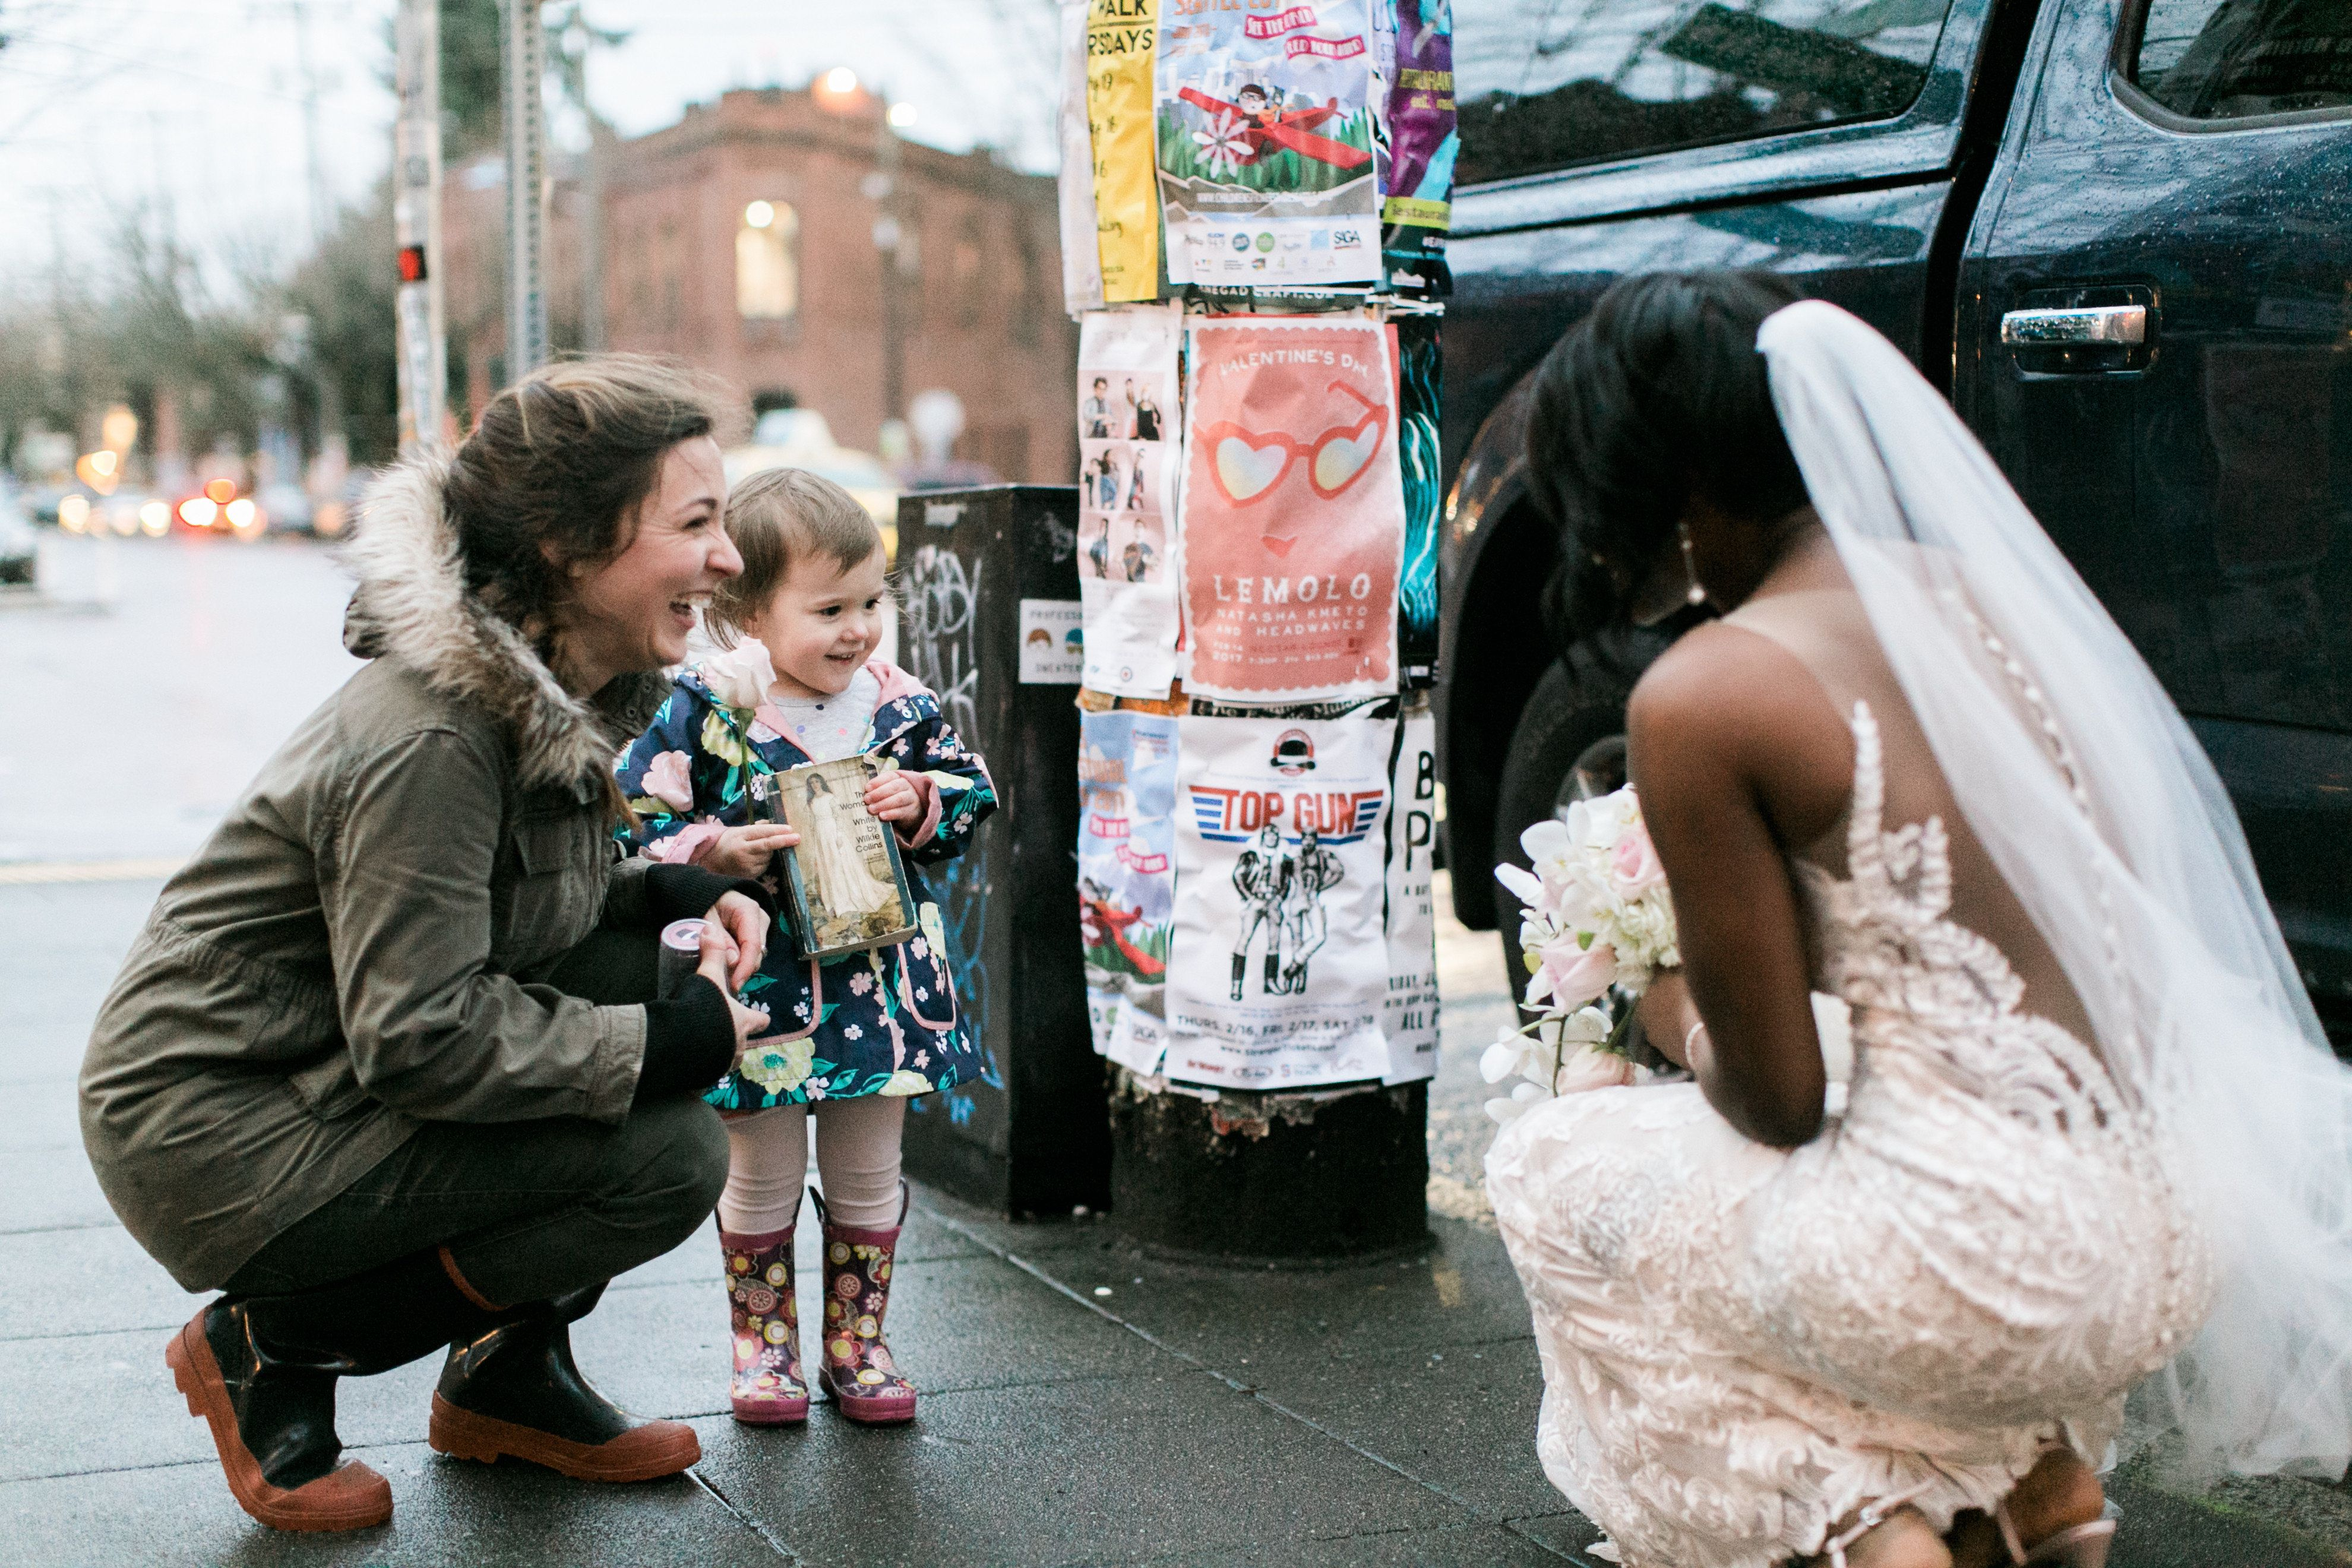 The toddler was speechless, according to the bride and groom.